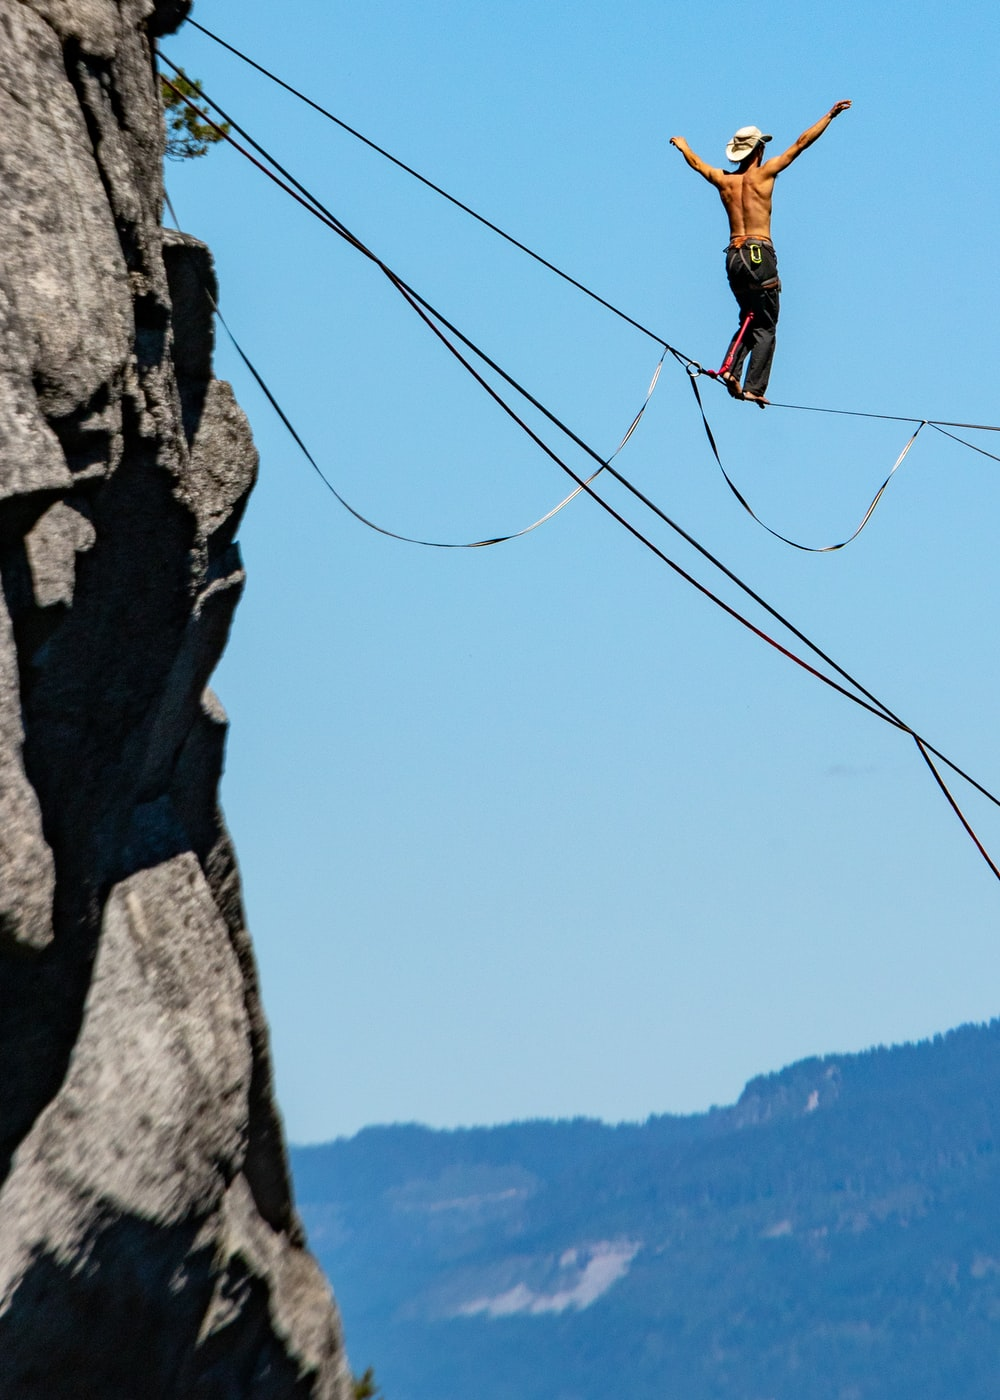 man standing on ropes